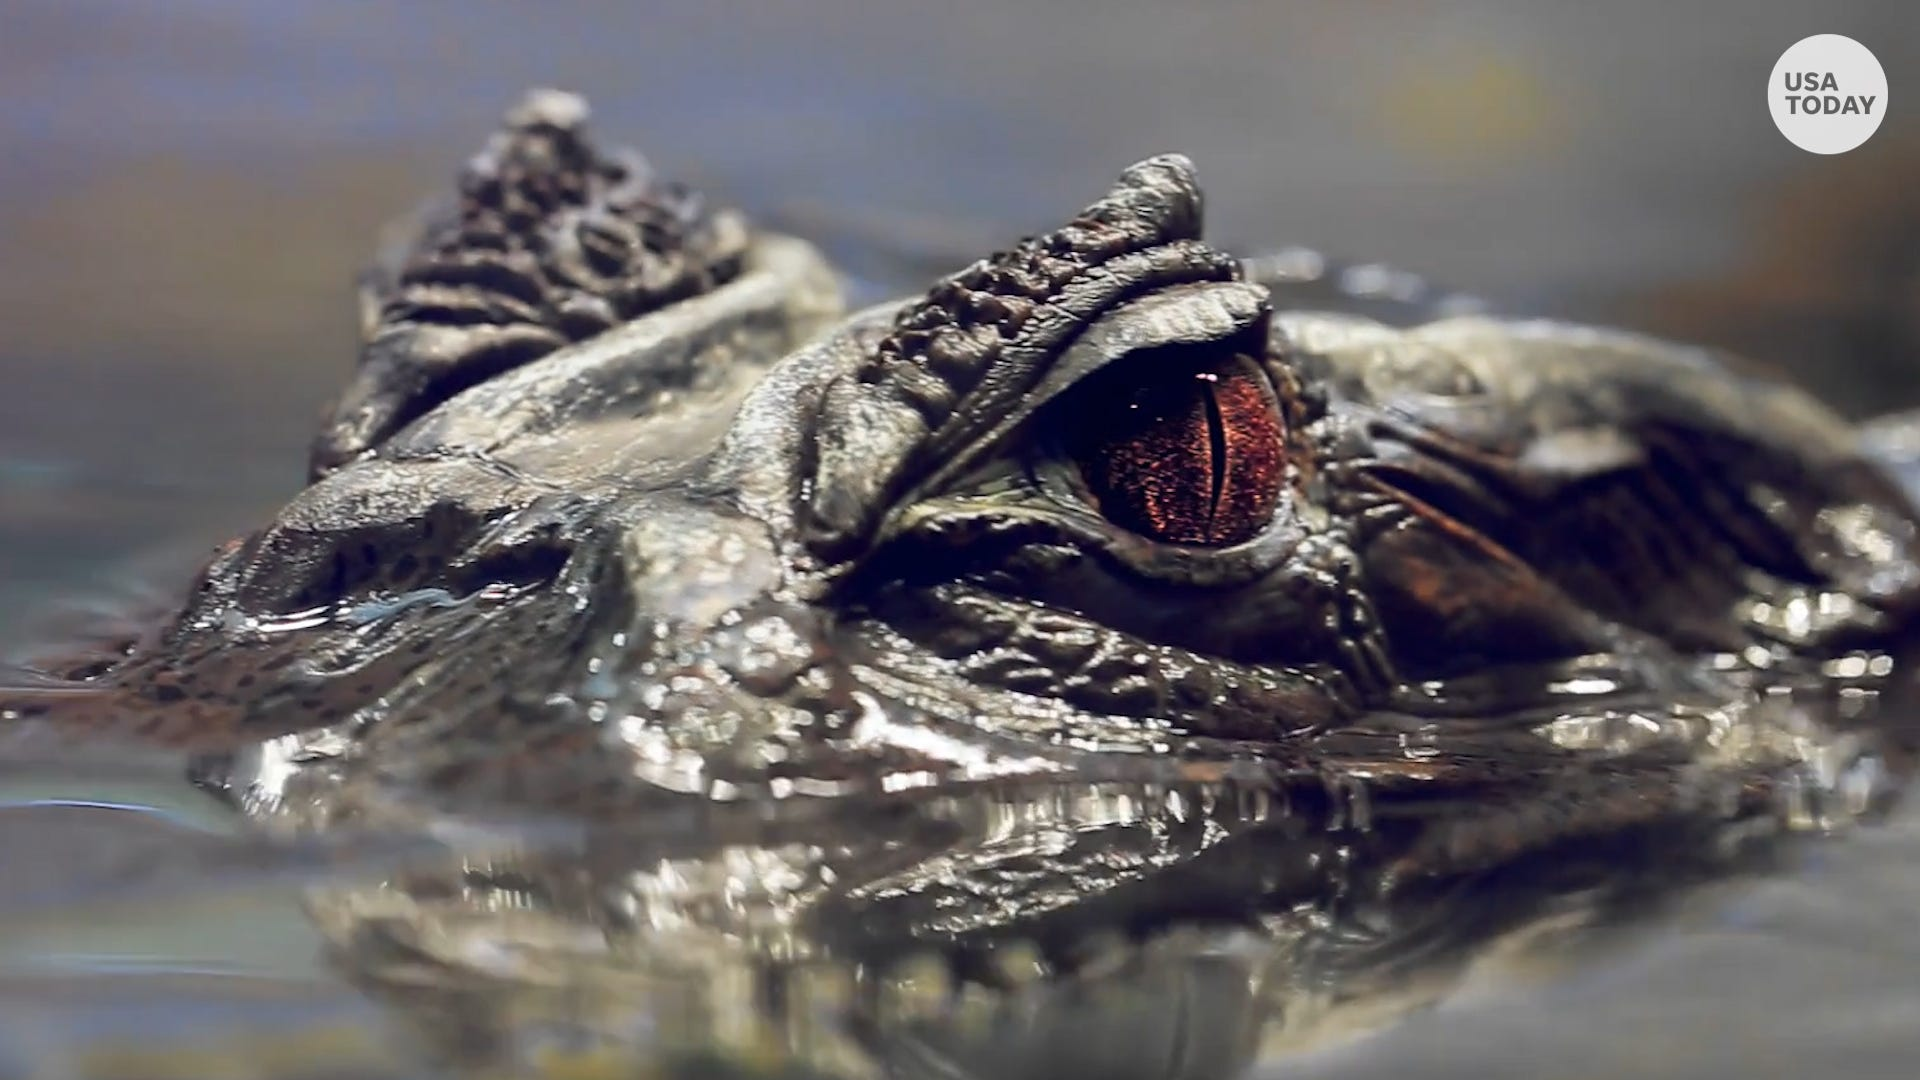 Flushing drugs down toilets could create 'meth-gators,' police warn